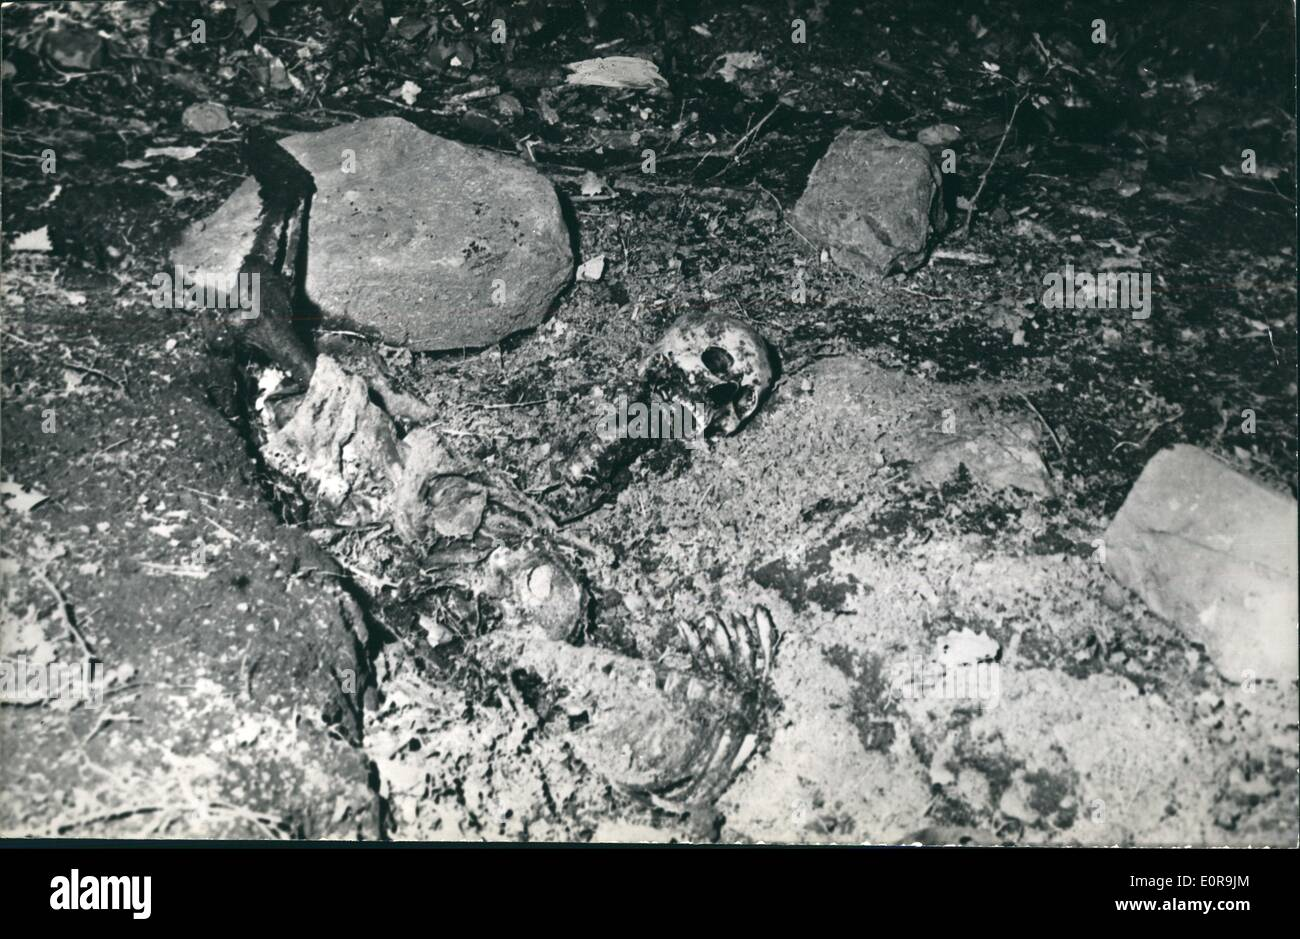 sep 09 1958 400 mutilated bodies of slain muslims found in stock